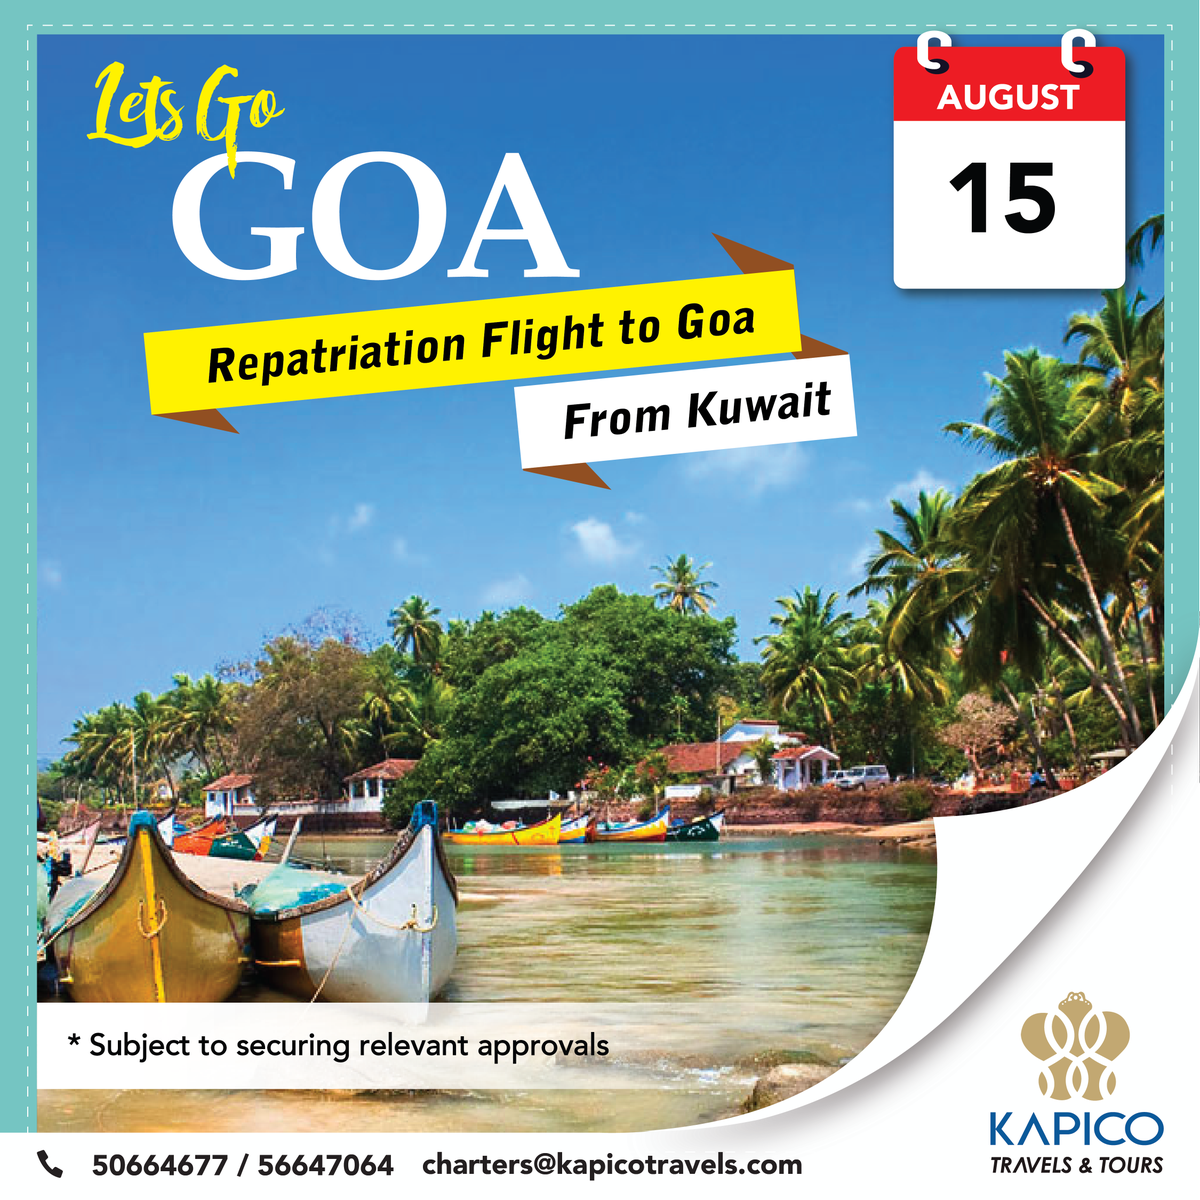 KAPICO Travels is organizing a special charter #flight to #Goa from #Kuwait.Bookings open for Goa, KA & MH state travelers. For more info call us.  شركه كابيكو للسياحة والسفر تعلن عن رحلات طيران خاصه إلي (غوا) من الكويت لمعرفة التفاصيل اتصل بنا 50664677 , 56647064  #Kapicotravels https://t.co/nSHYMFwlk6